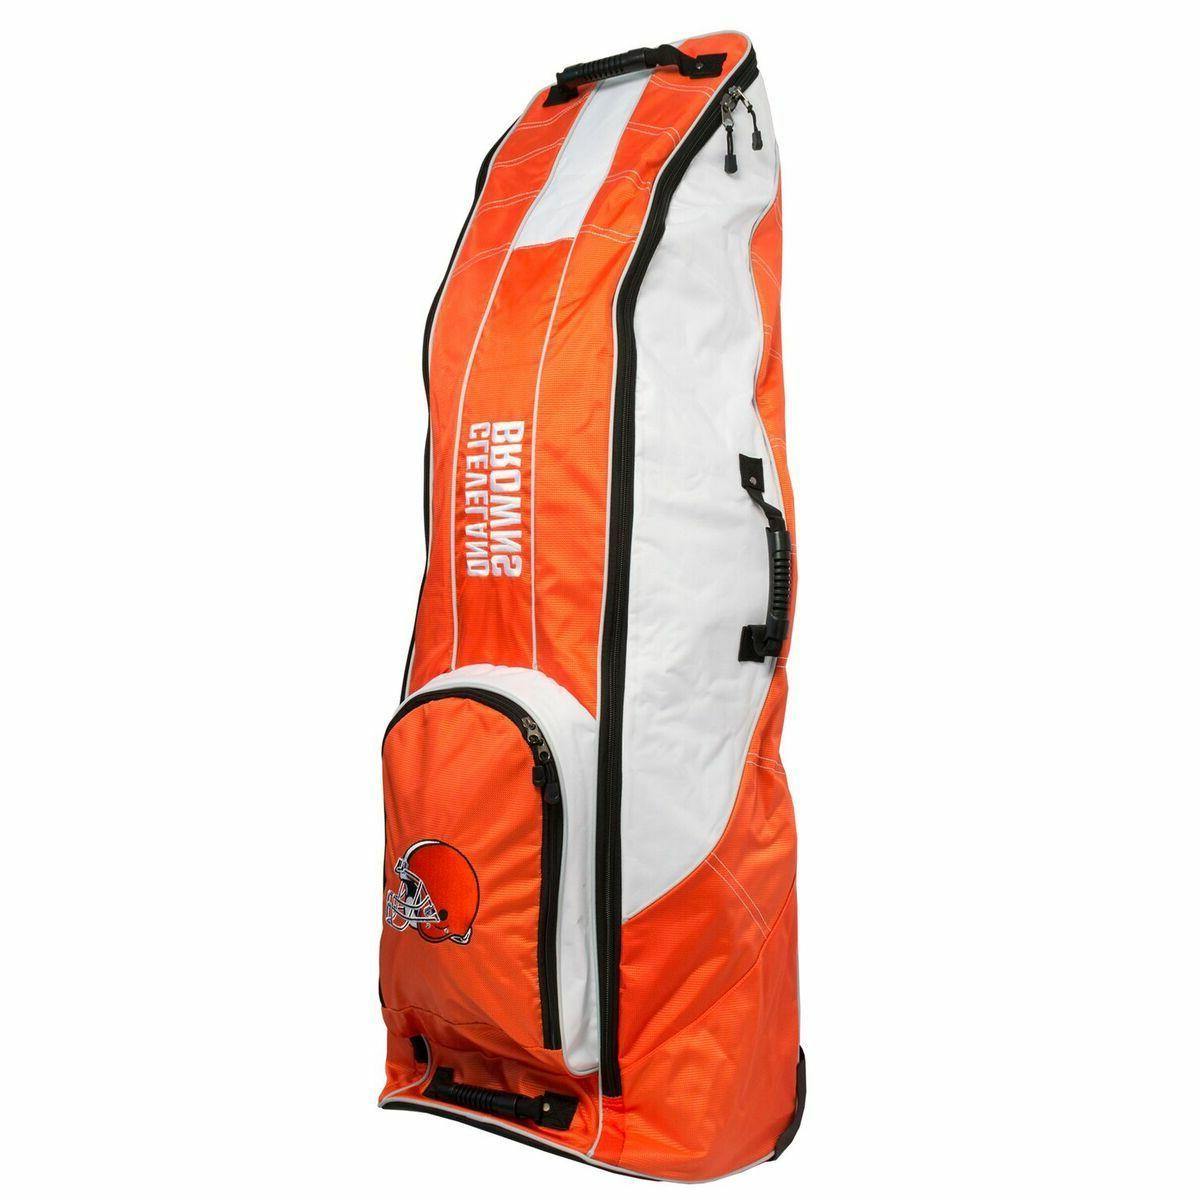 New Golf Browns Golf Bag Travel Cover